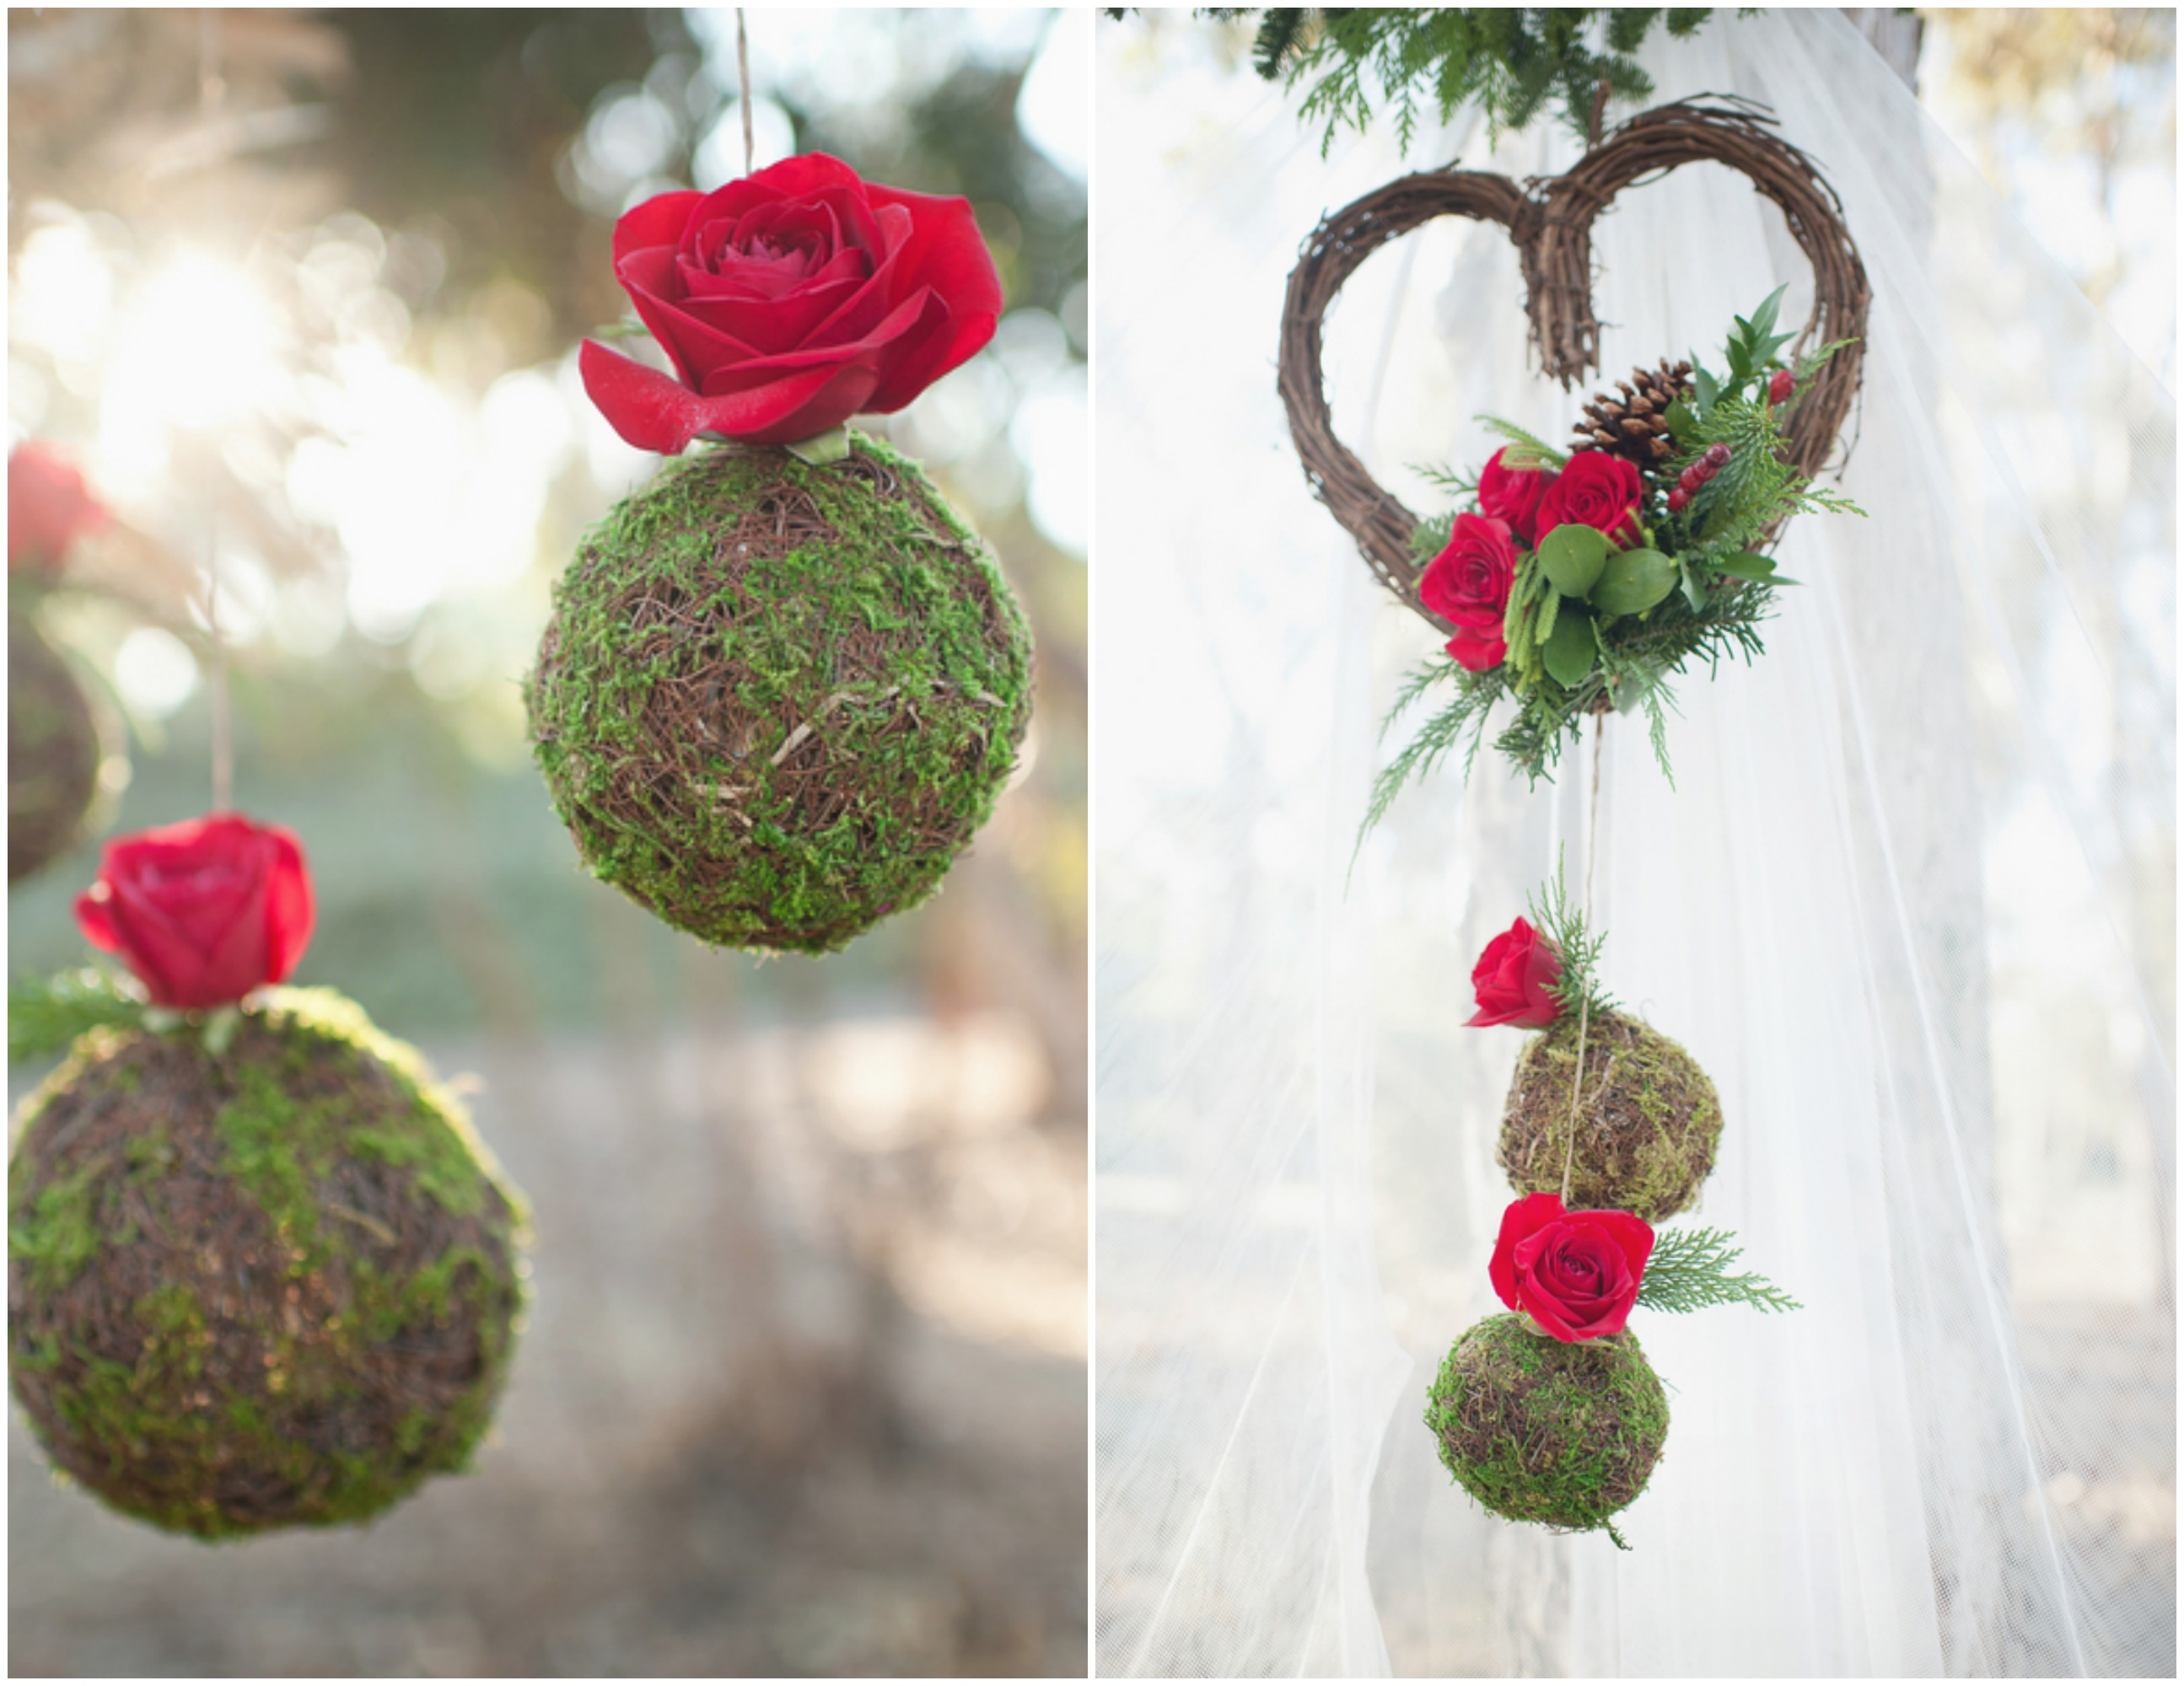 Winter Rustic Wedding Ideas - Rustic Wedding Chic